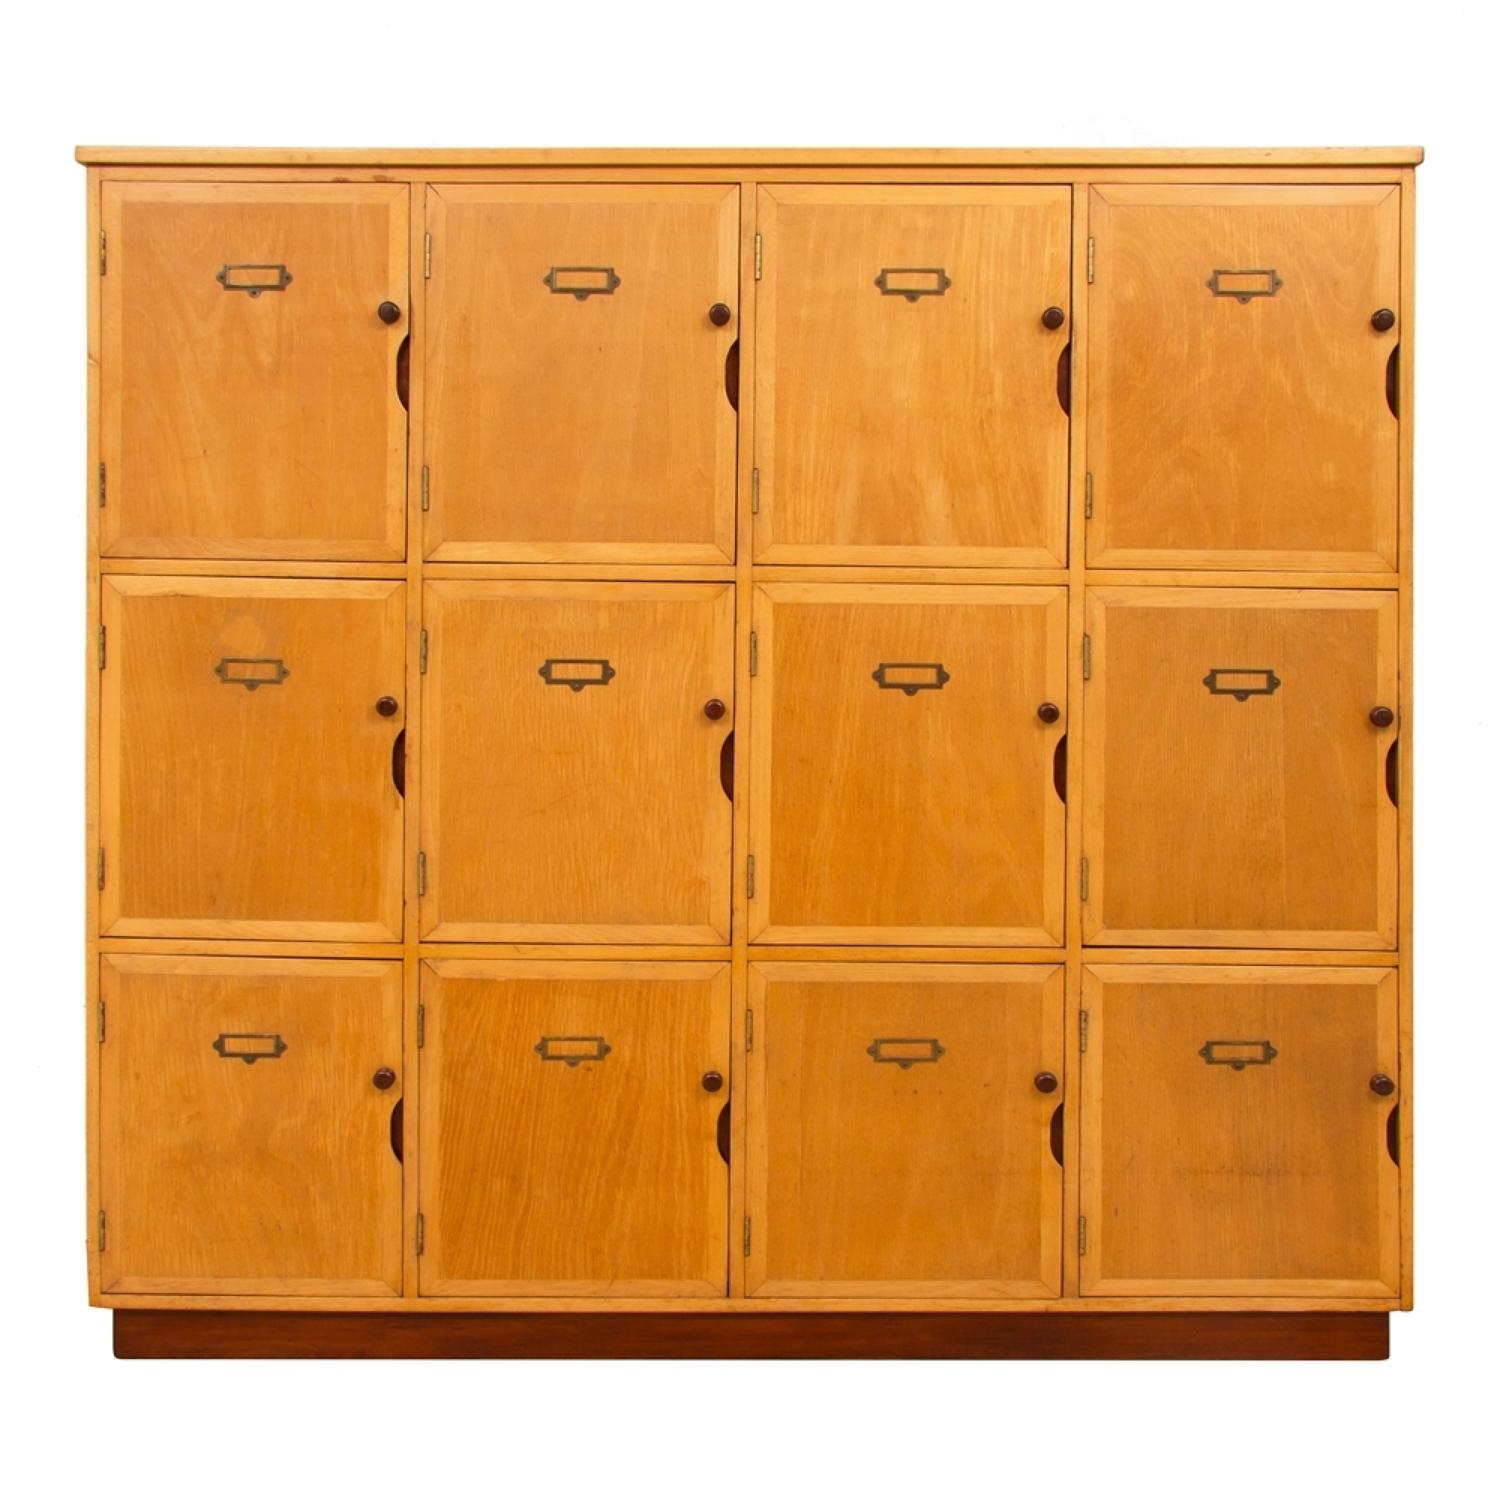 Vintage Oak Bank of Lockers